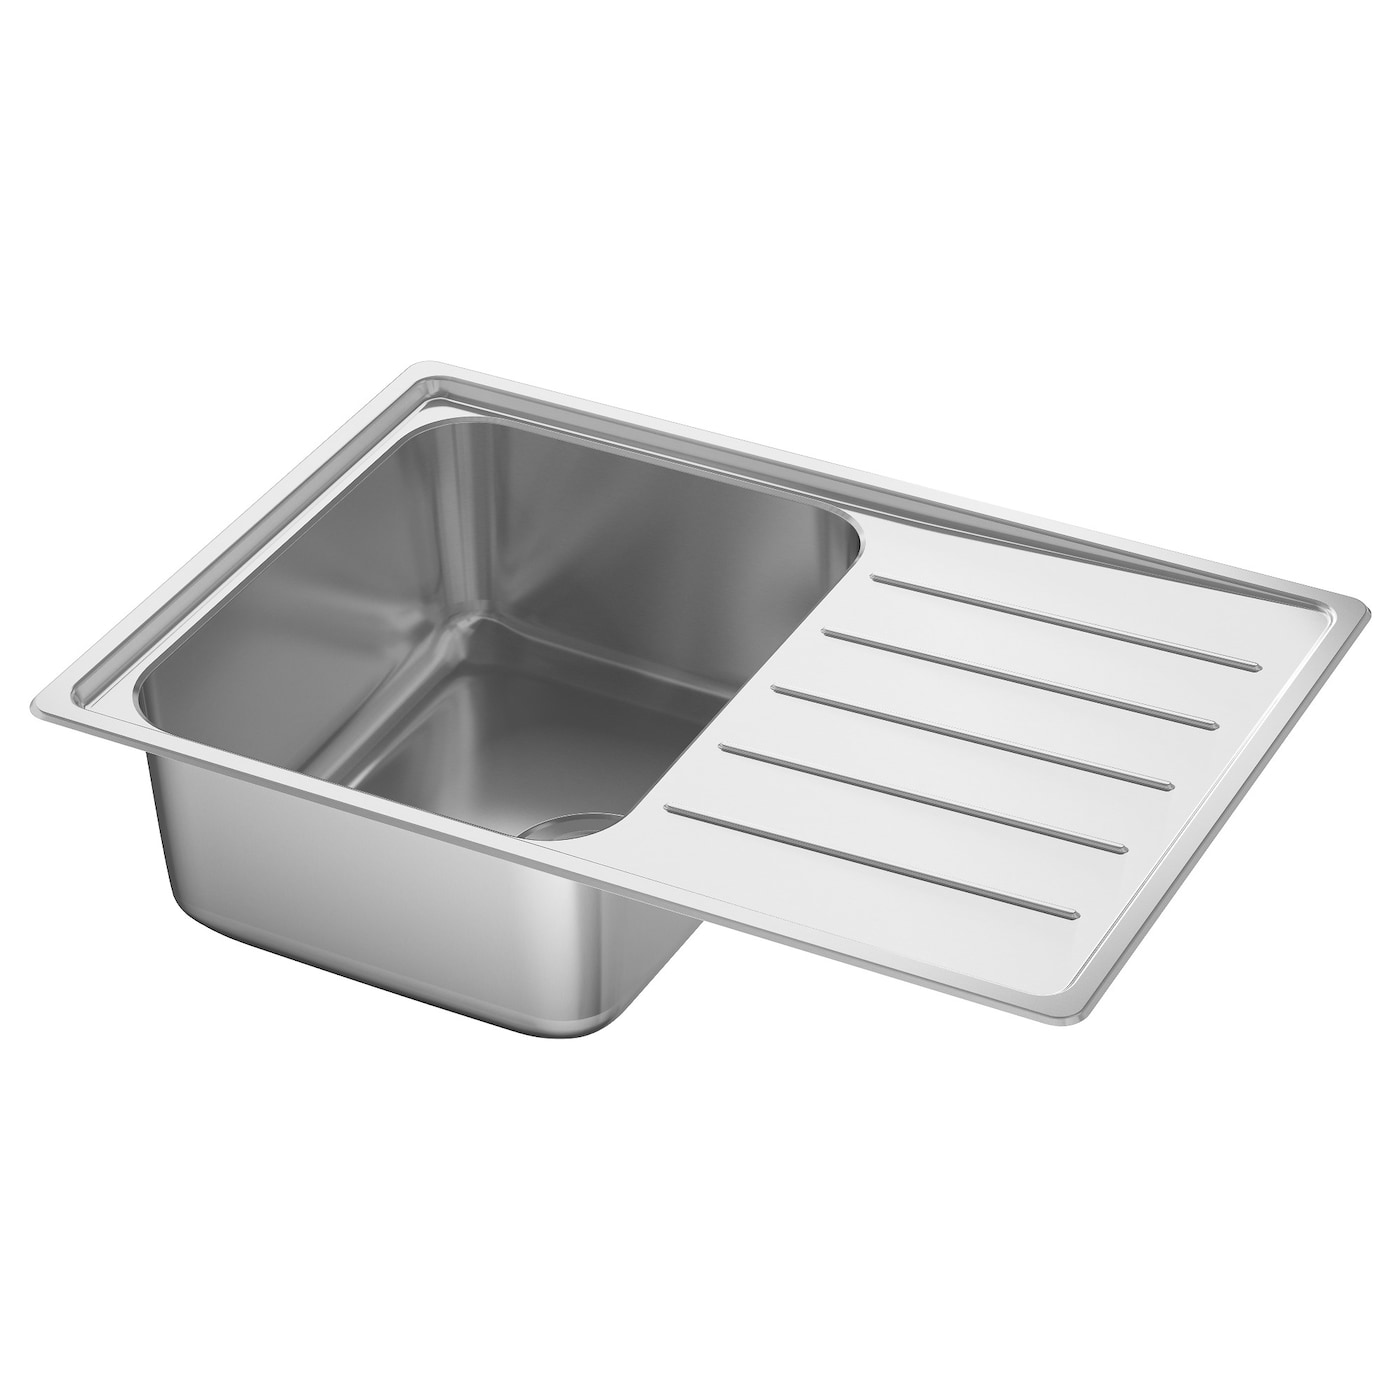 vattudalen inset sink, 1 bowl with drainboard stainless steel